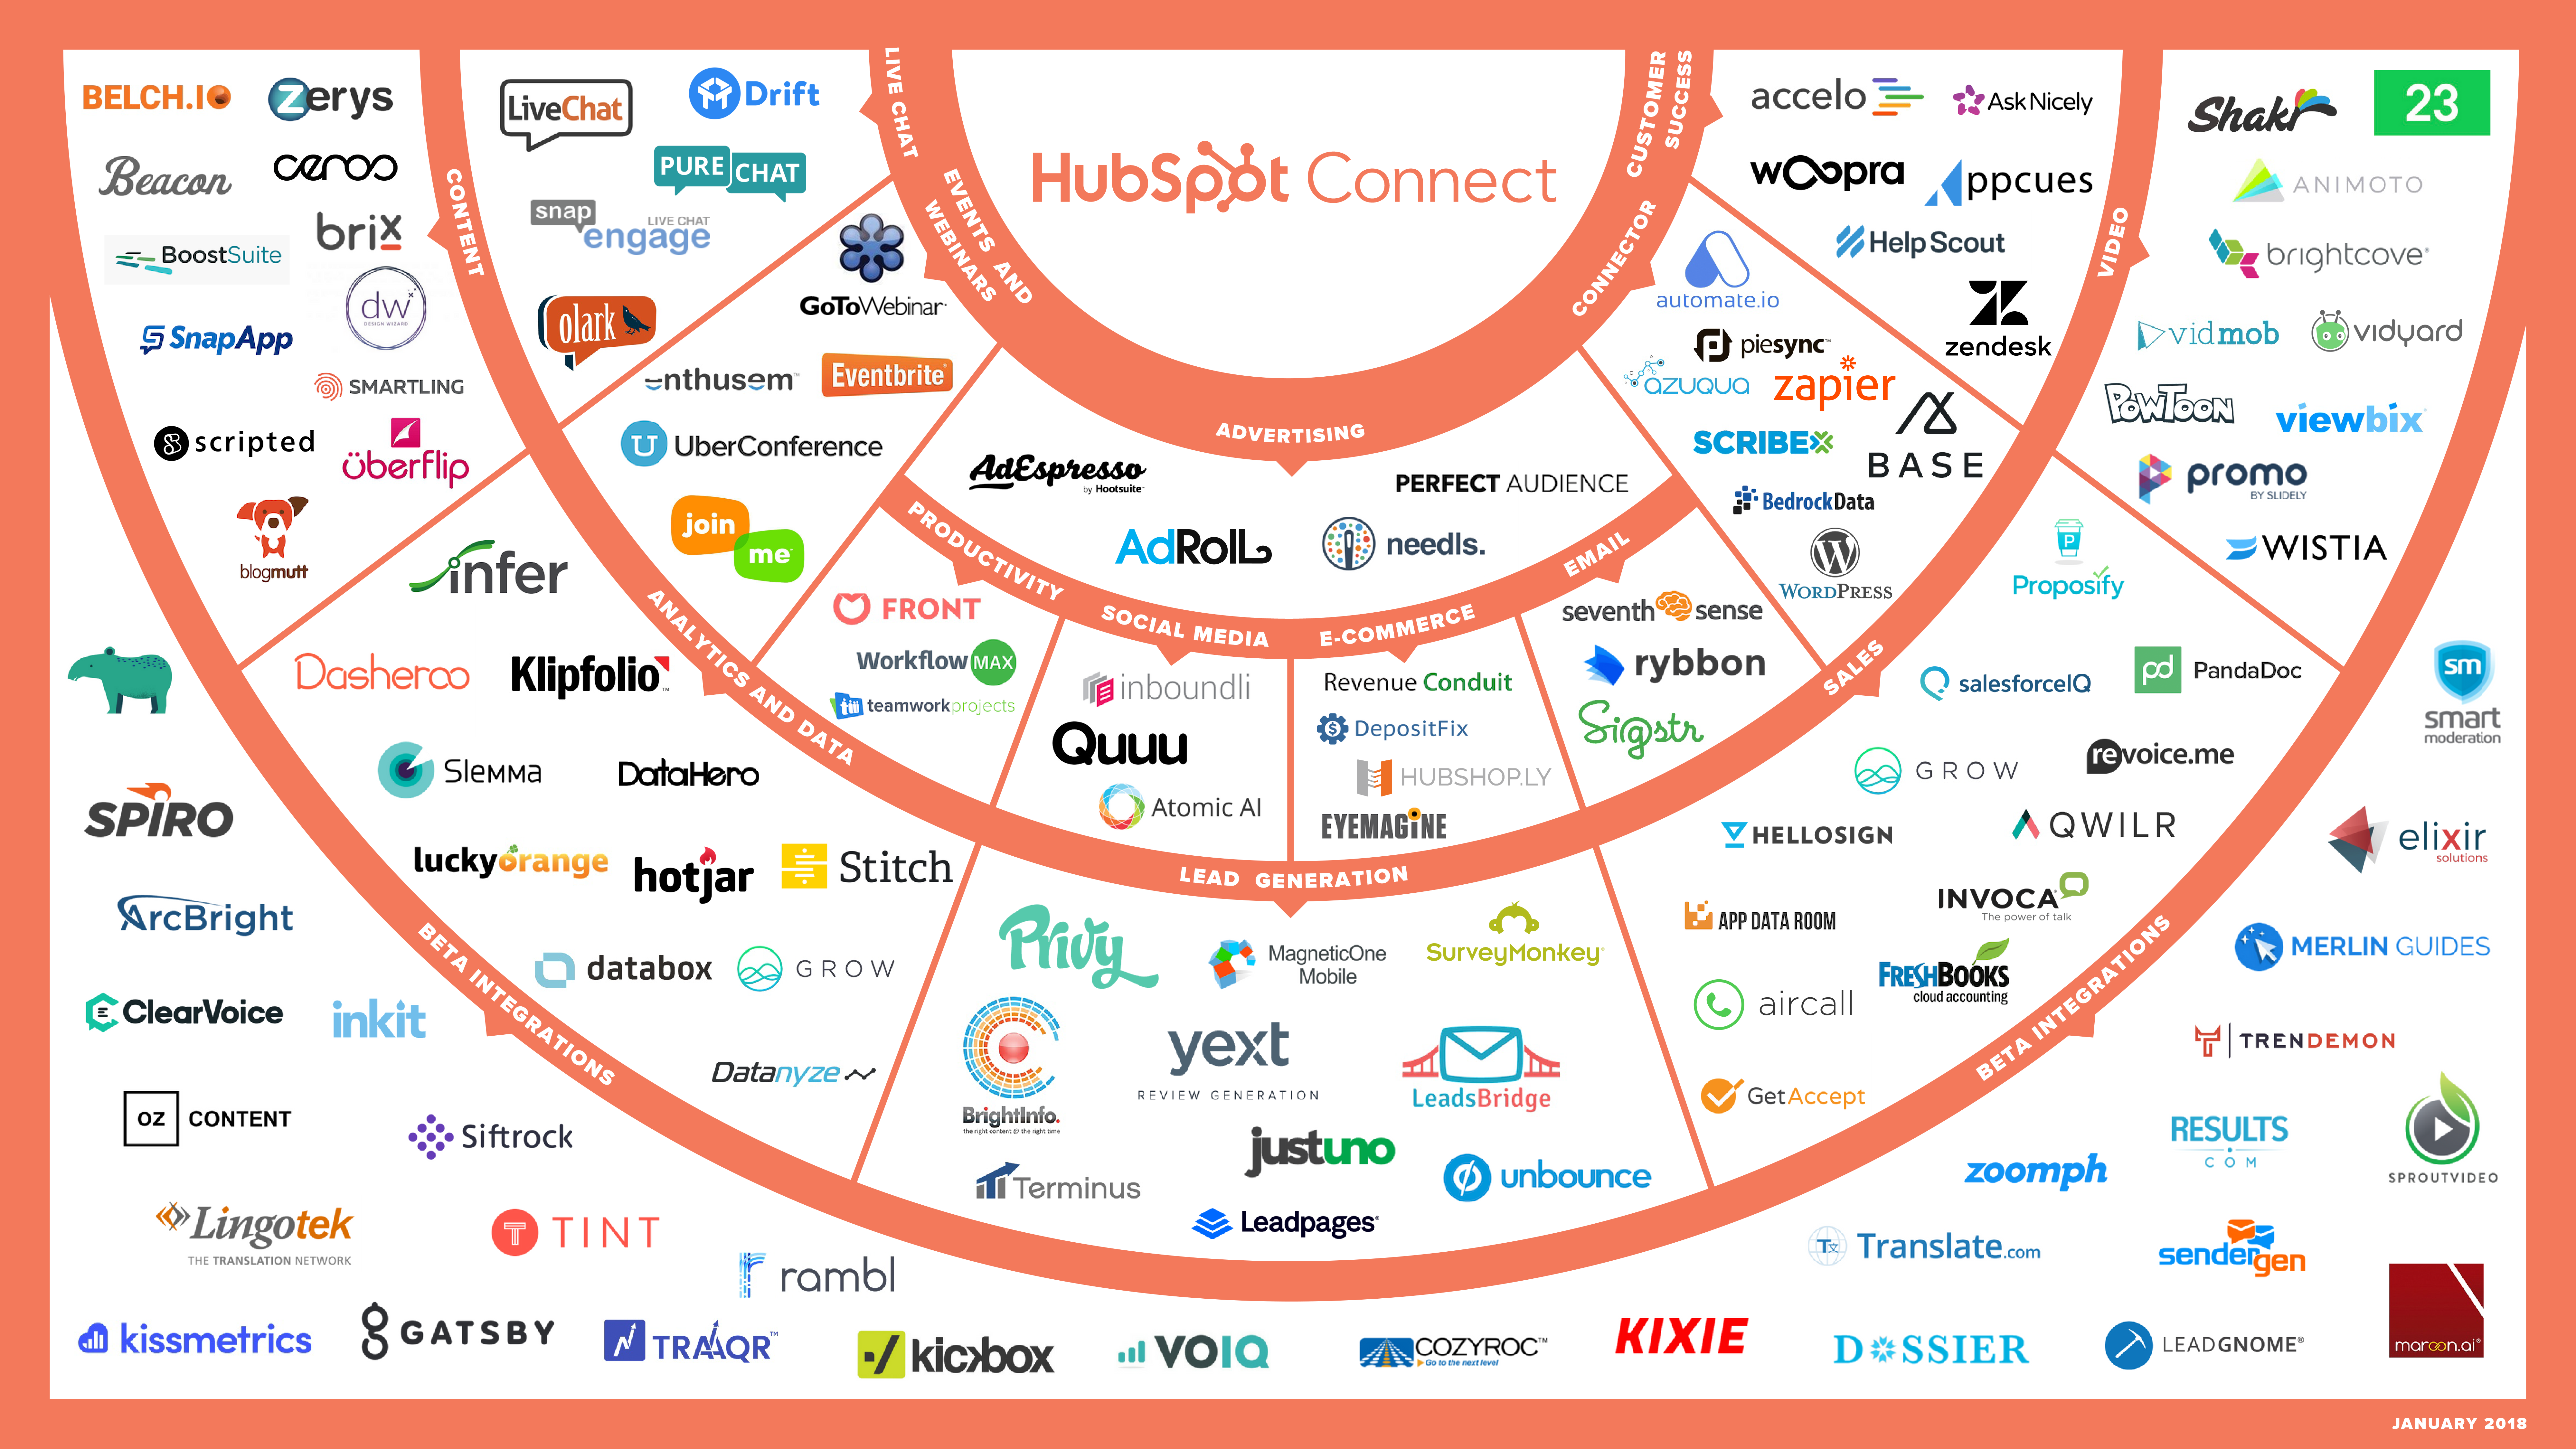 HubSpot Connect Ecosystem